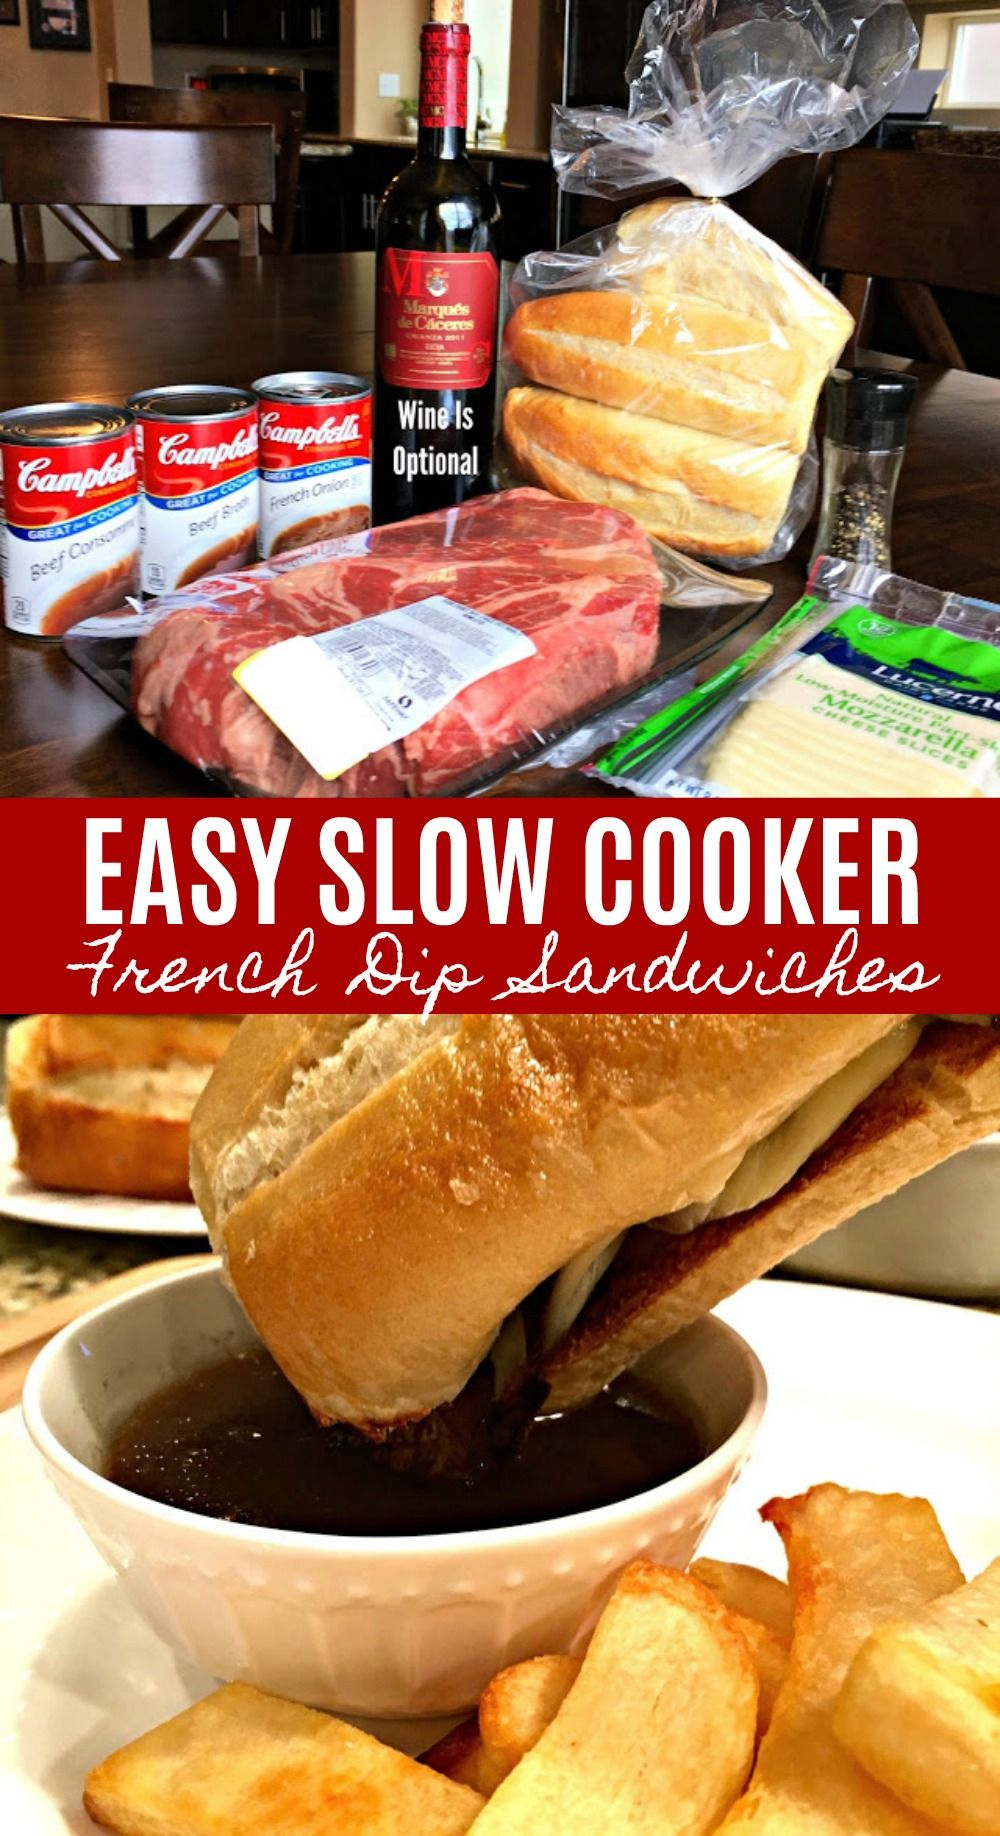 Slow Cooker French Dip Sandwiches Easy In 2020 French Dip French Dip Sandwich Recipes